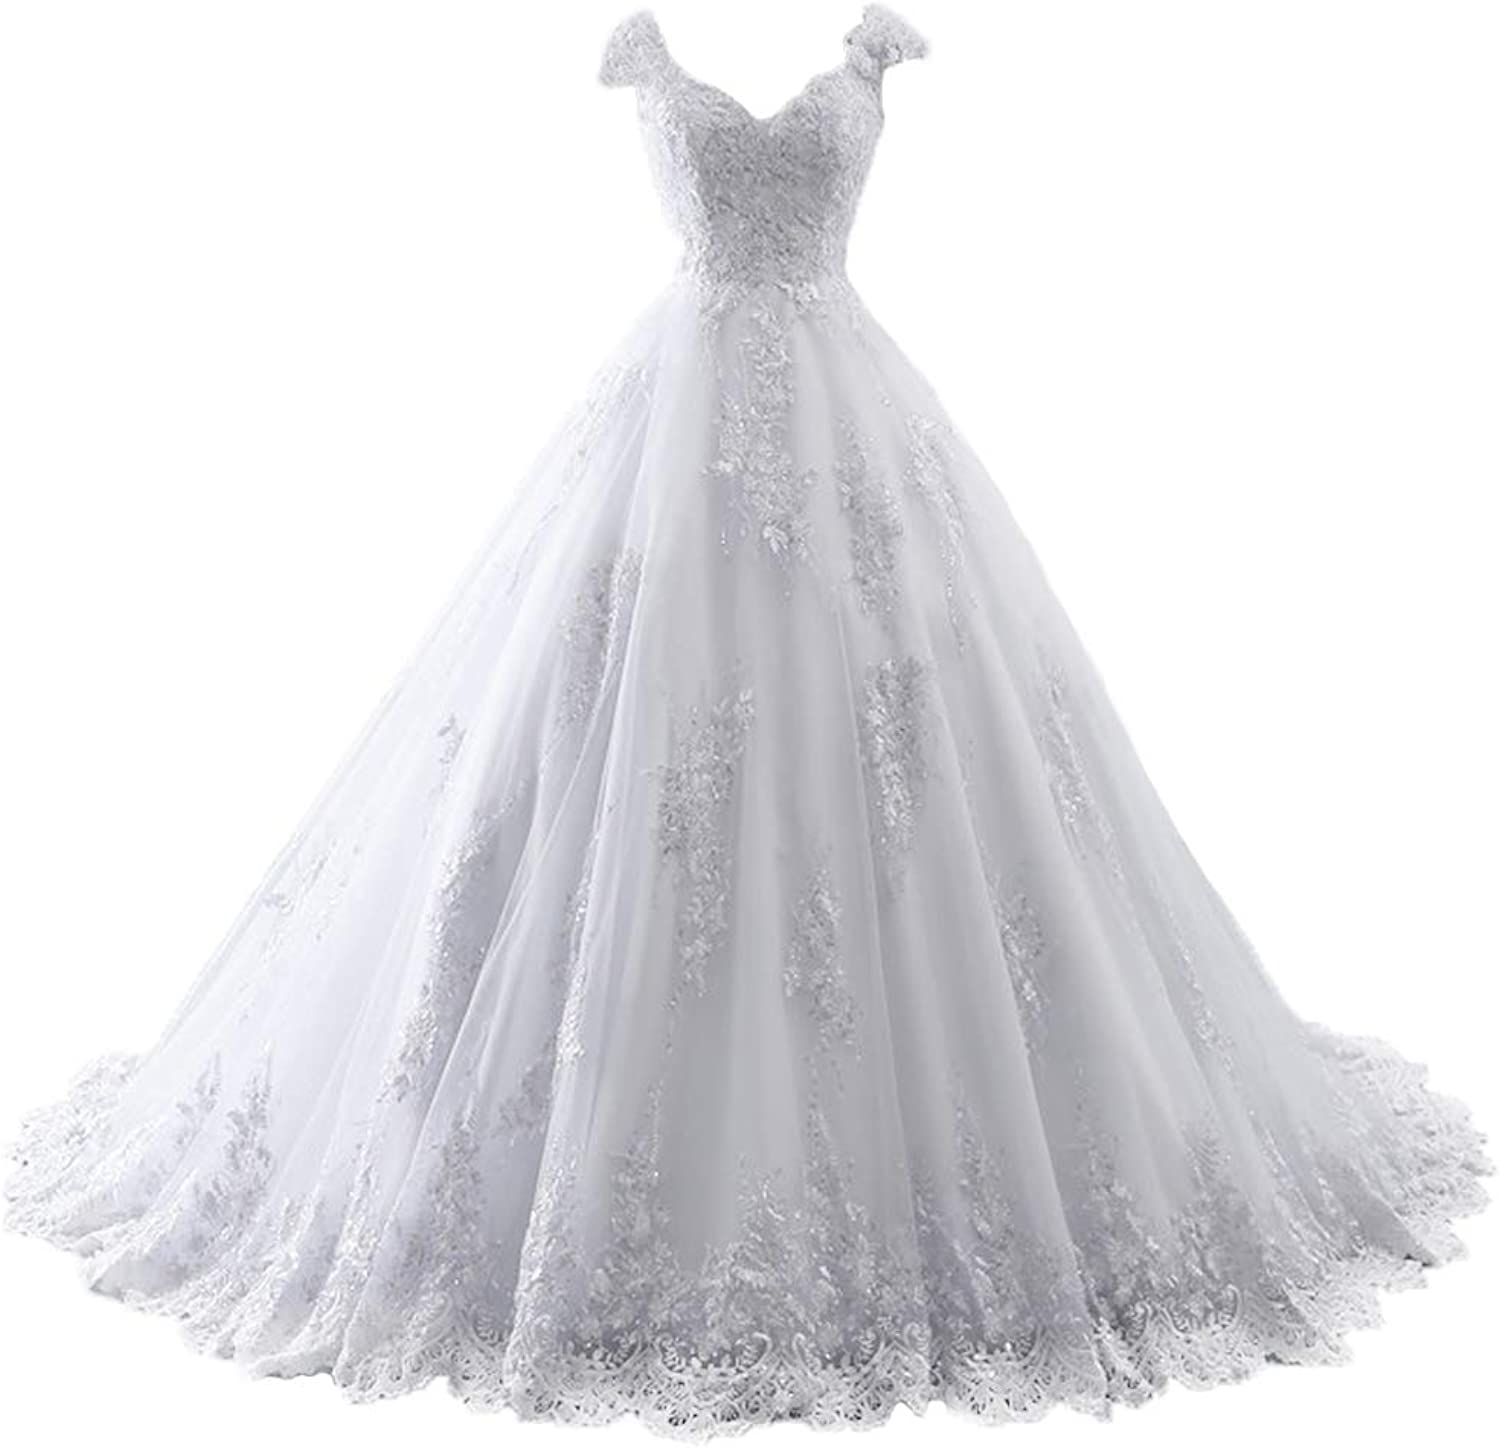 Cdress Ball Gown Wedding Dresses Lace Appliques Bridal Gowns VNeck Cap Sleeves for Bride